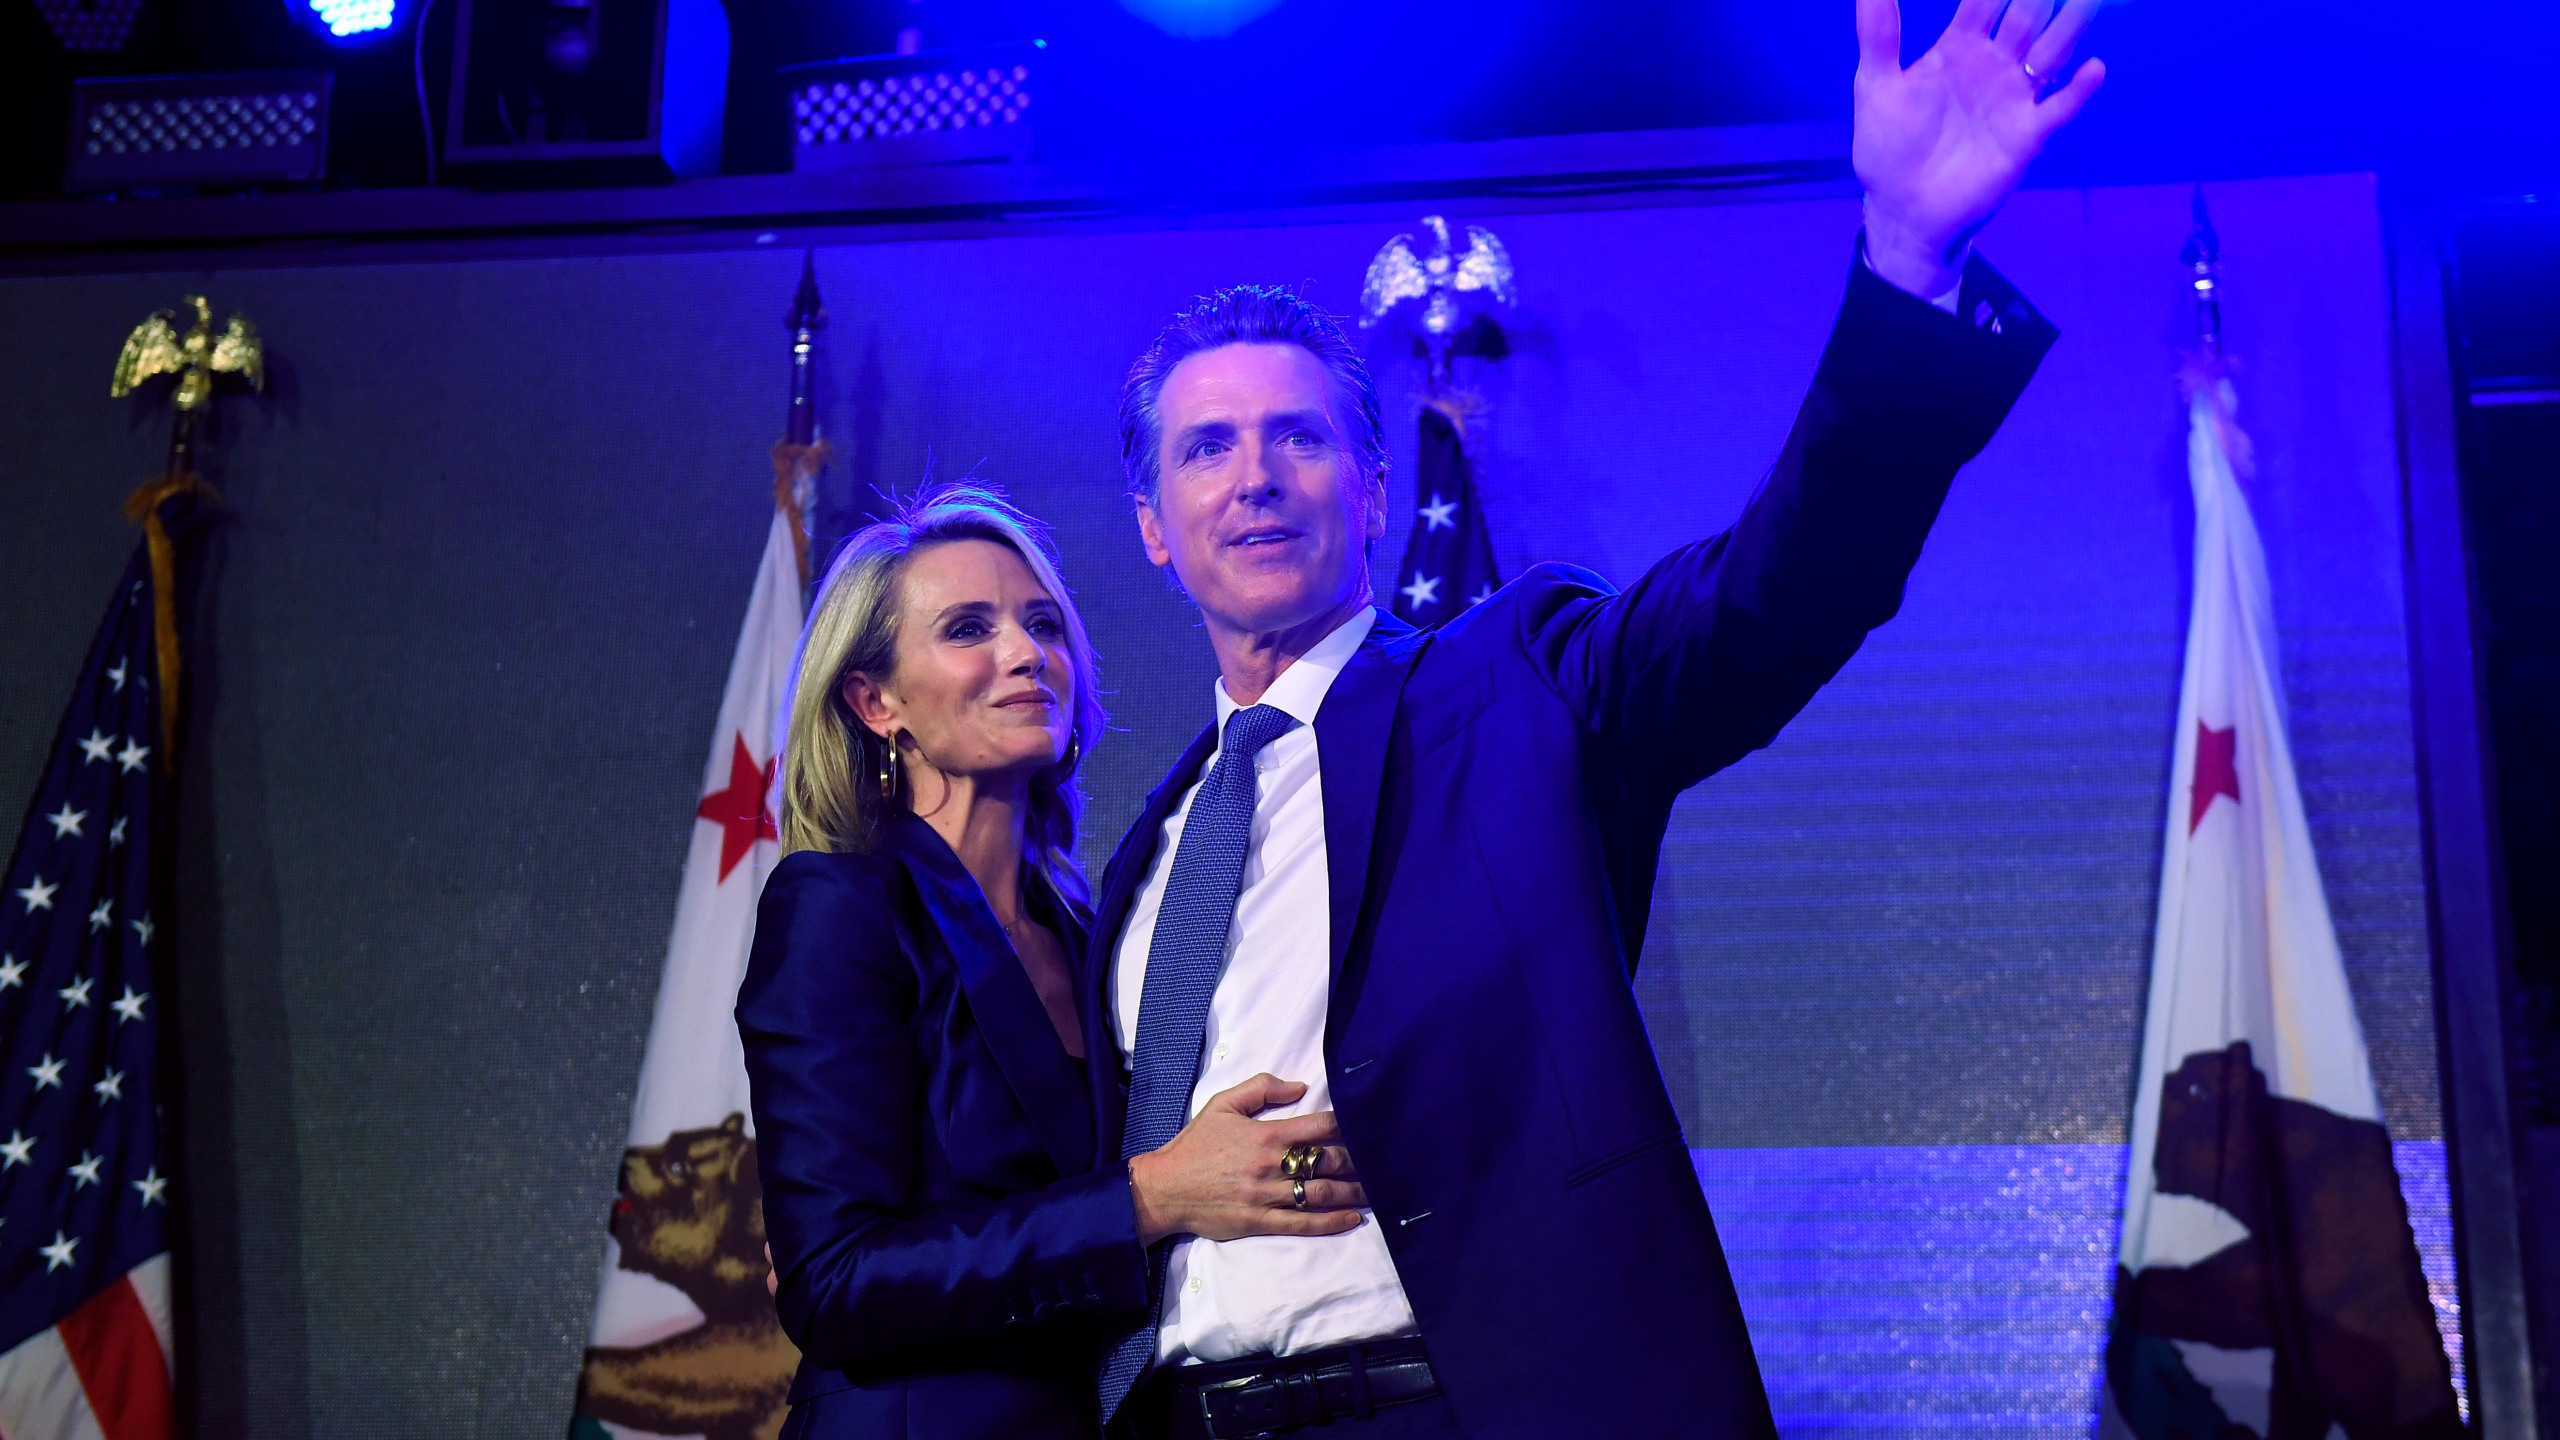 Gavin Newsom stands by his wife, Jennifer Siebel Newsom, as he waves to supporters during an election night event on Nov. 6, 2018 in Los Angeles. (Credit: Kevork Djansezian/Getty Images)